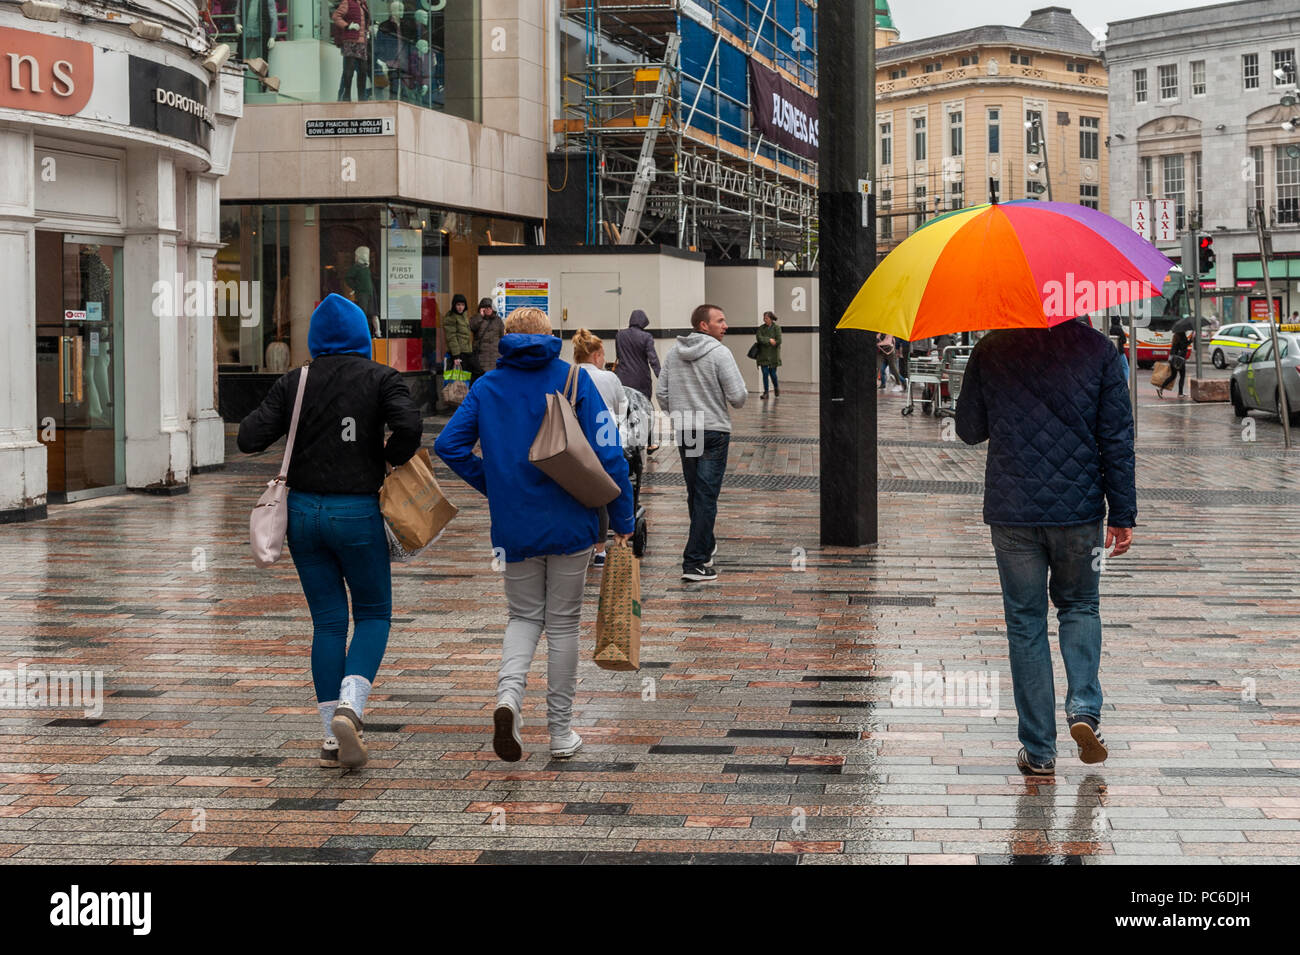 cork-ireland-1st-aug-2018-shoppers-in-patrick-street-cork-city-rush-to-get-out-of-the-rain-during-one-of-the-wettest-days-of-the-last-few-weeks-the-rain-will-give-way-to-hot-sunny-weather-this-weekend-with-temperatures-expected-to-hit-28-celsius-credit-andy-gibsonalamy-live-news-PC6DJH.jpg